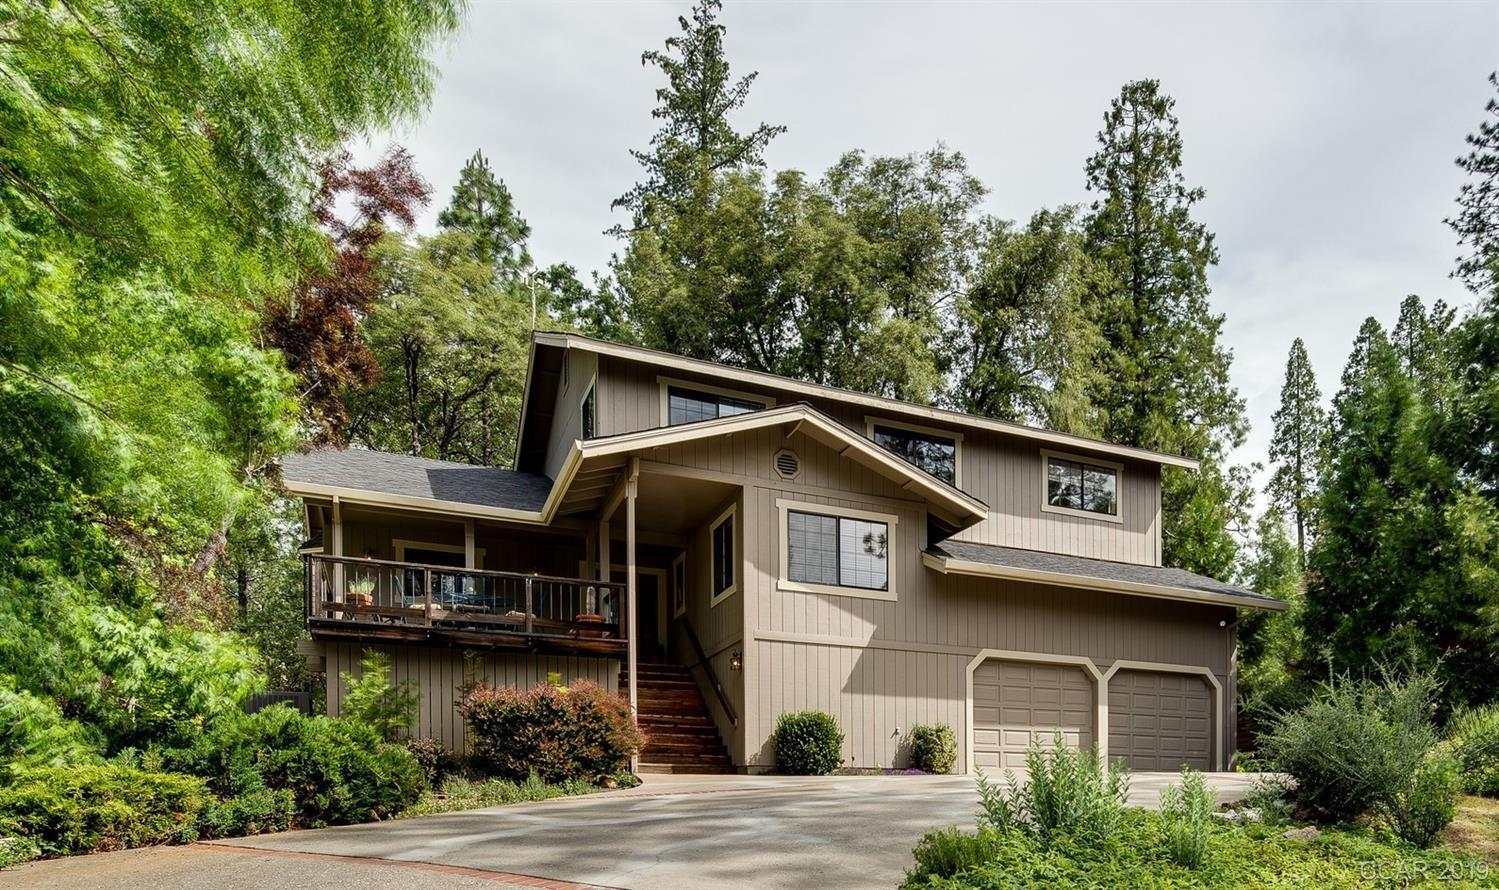 1010 Forest Meadows Dr, Murphys, CA, 95247